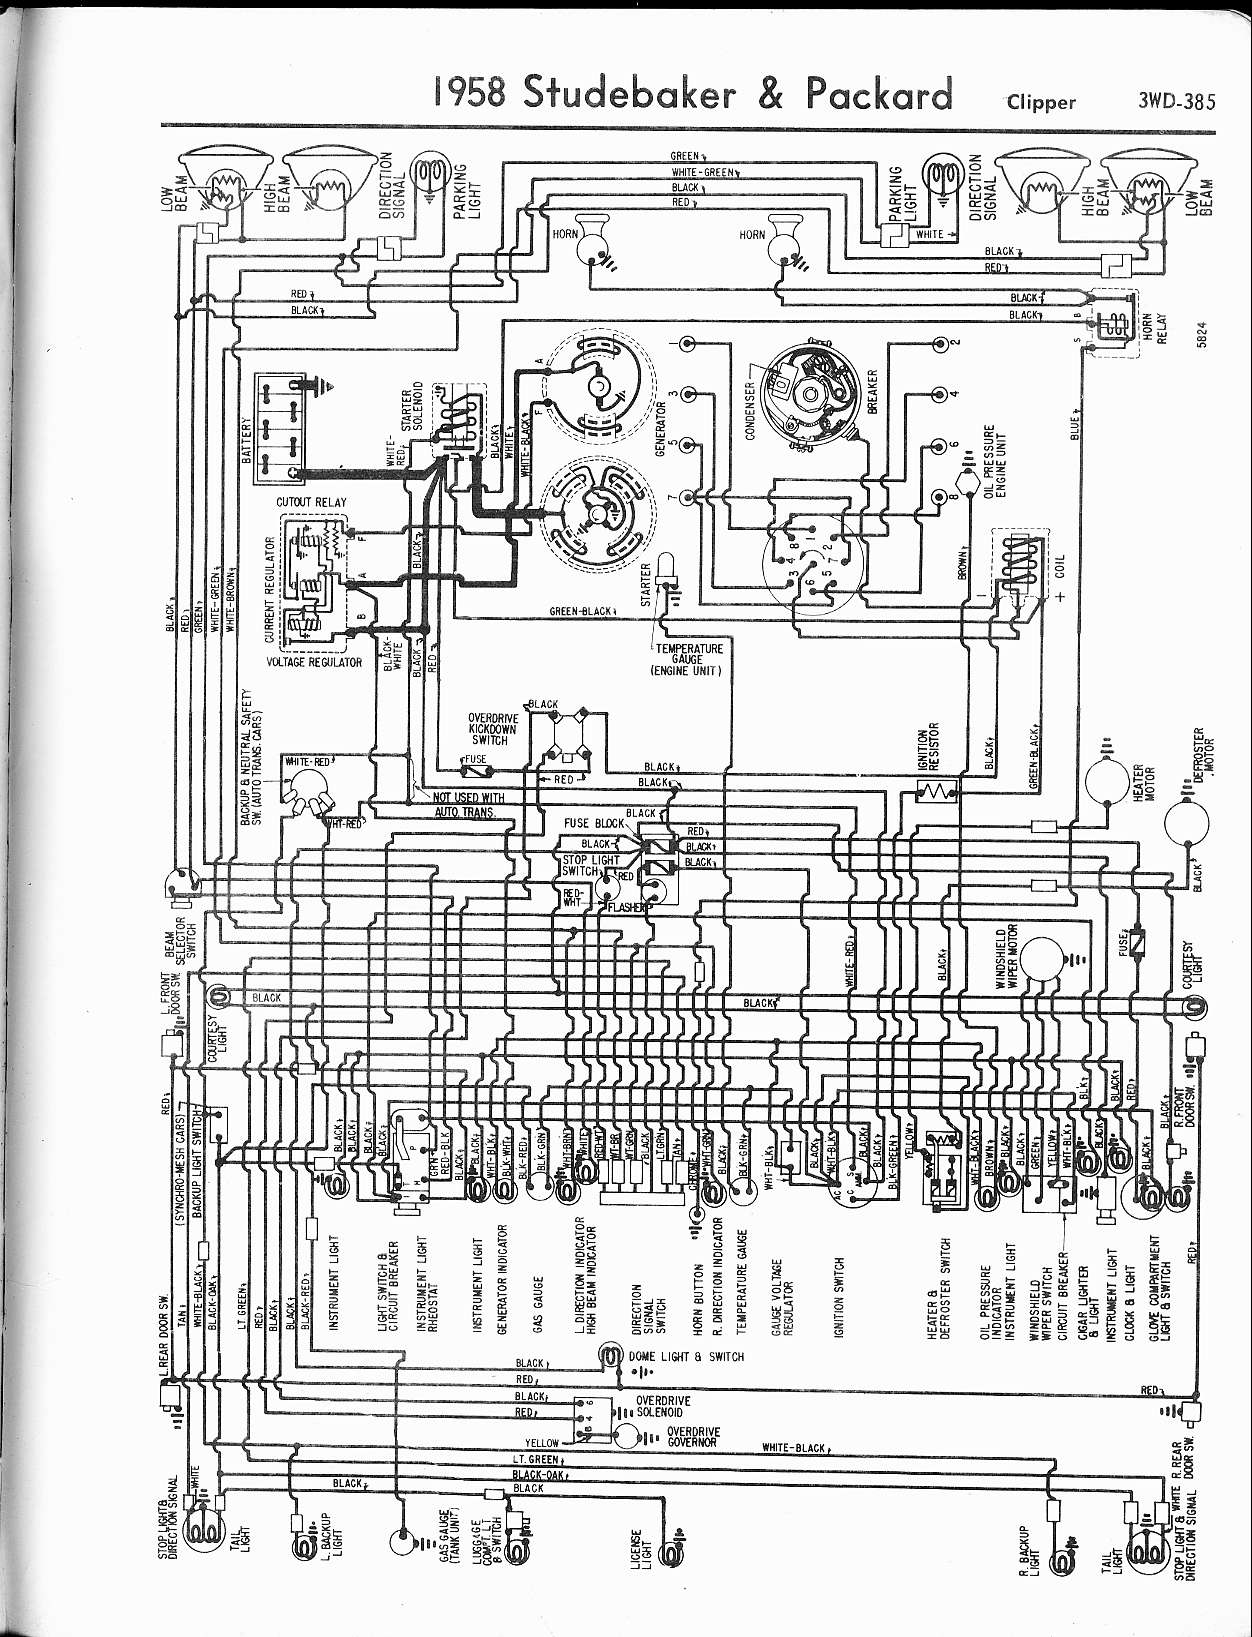 MWire5765 385 car wiring diagrams trailer wiring diagrams \u2022 free wiring diagrams columbia wiring diagram at crackthecode.co